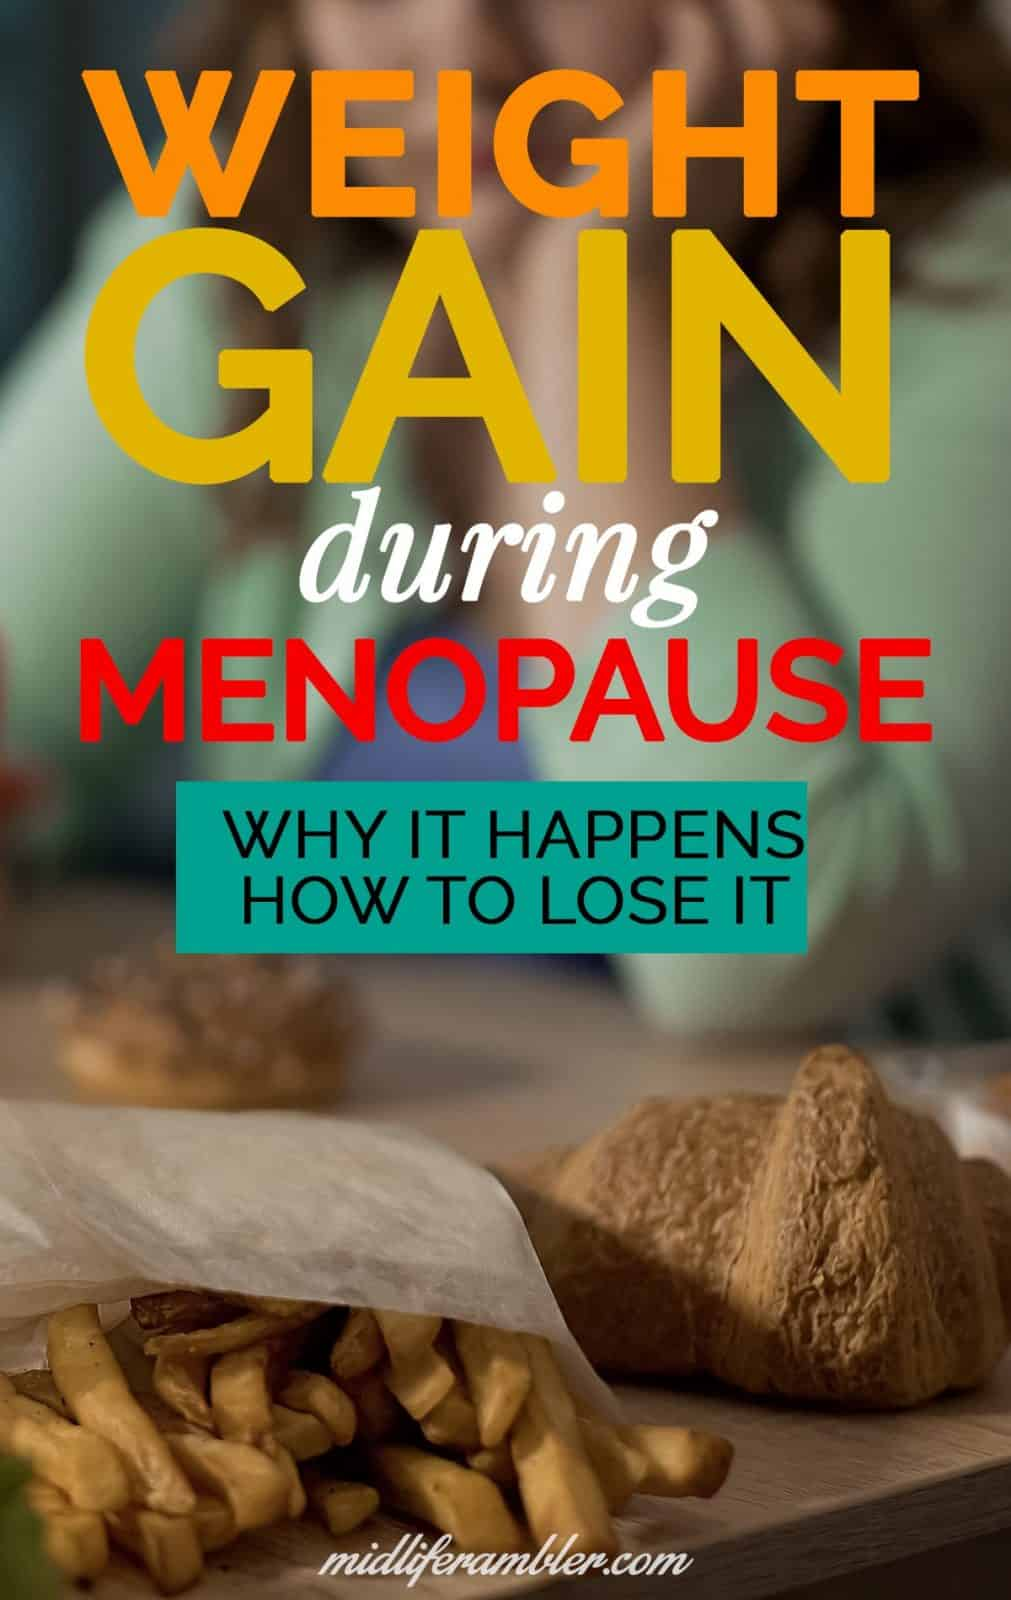 Menopausal Weight Gain: Why it Happens and How to Lose It 12